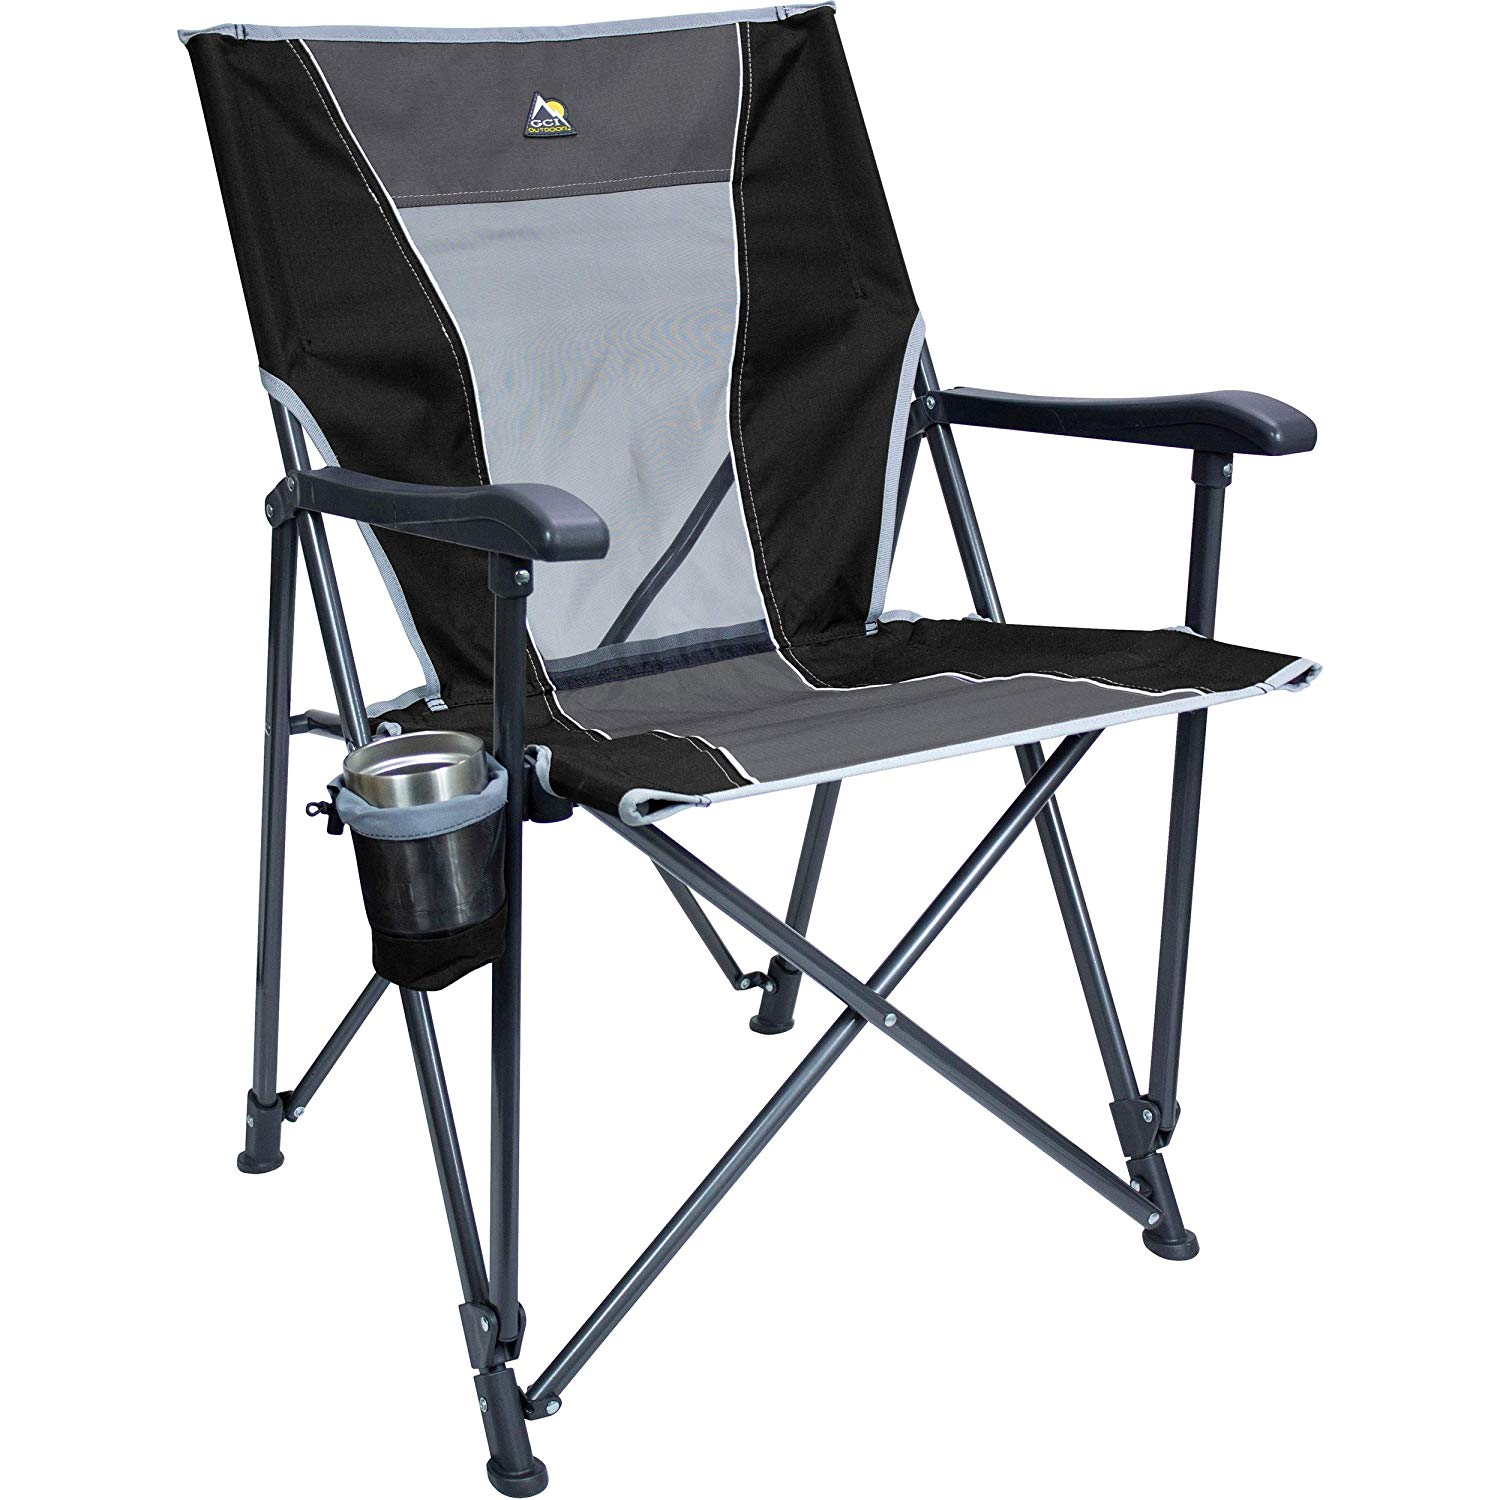 Eazy Chair by GCI Outdoor - Black